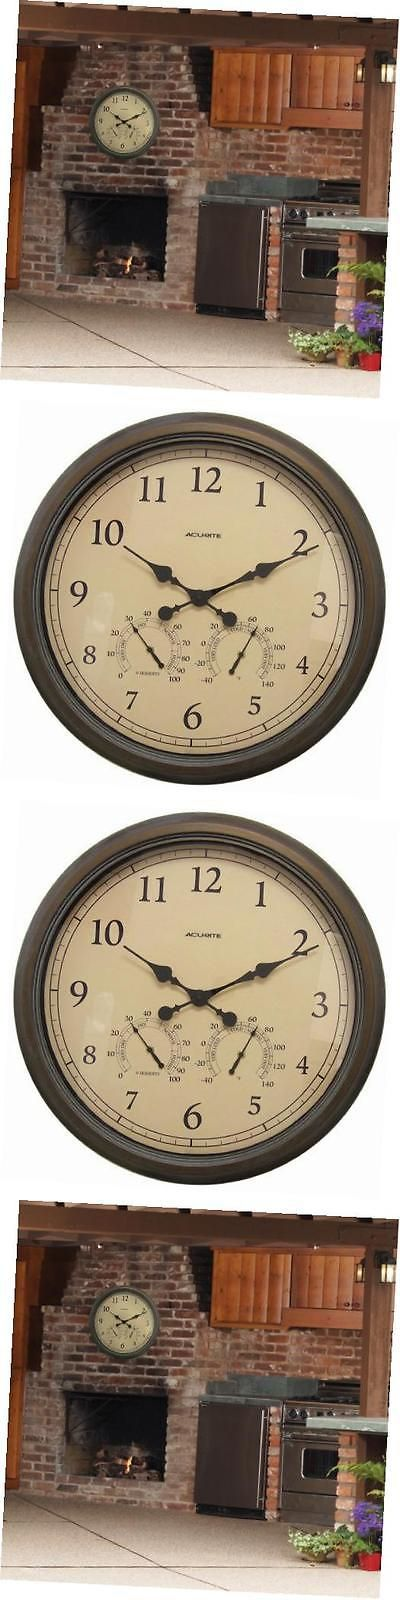 Outdoor Thermometers 75601: 01061 24-Inch Patina Indoor Outdoor Wall Clock With Thermometer And Hygrometer -> BUY IT NOW ONLY: $78.17 on eBay!